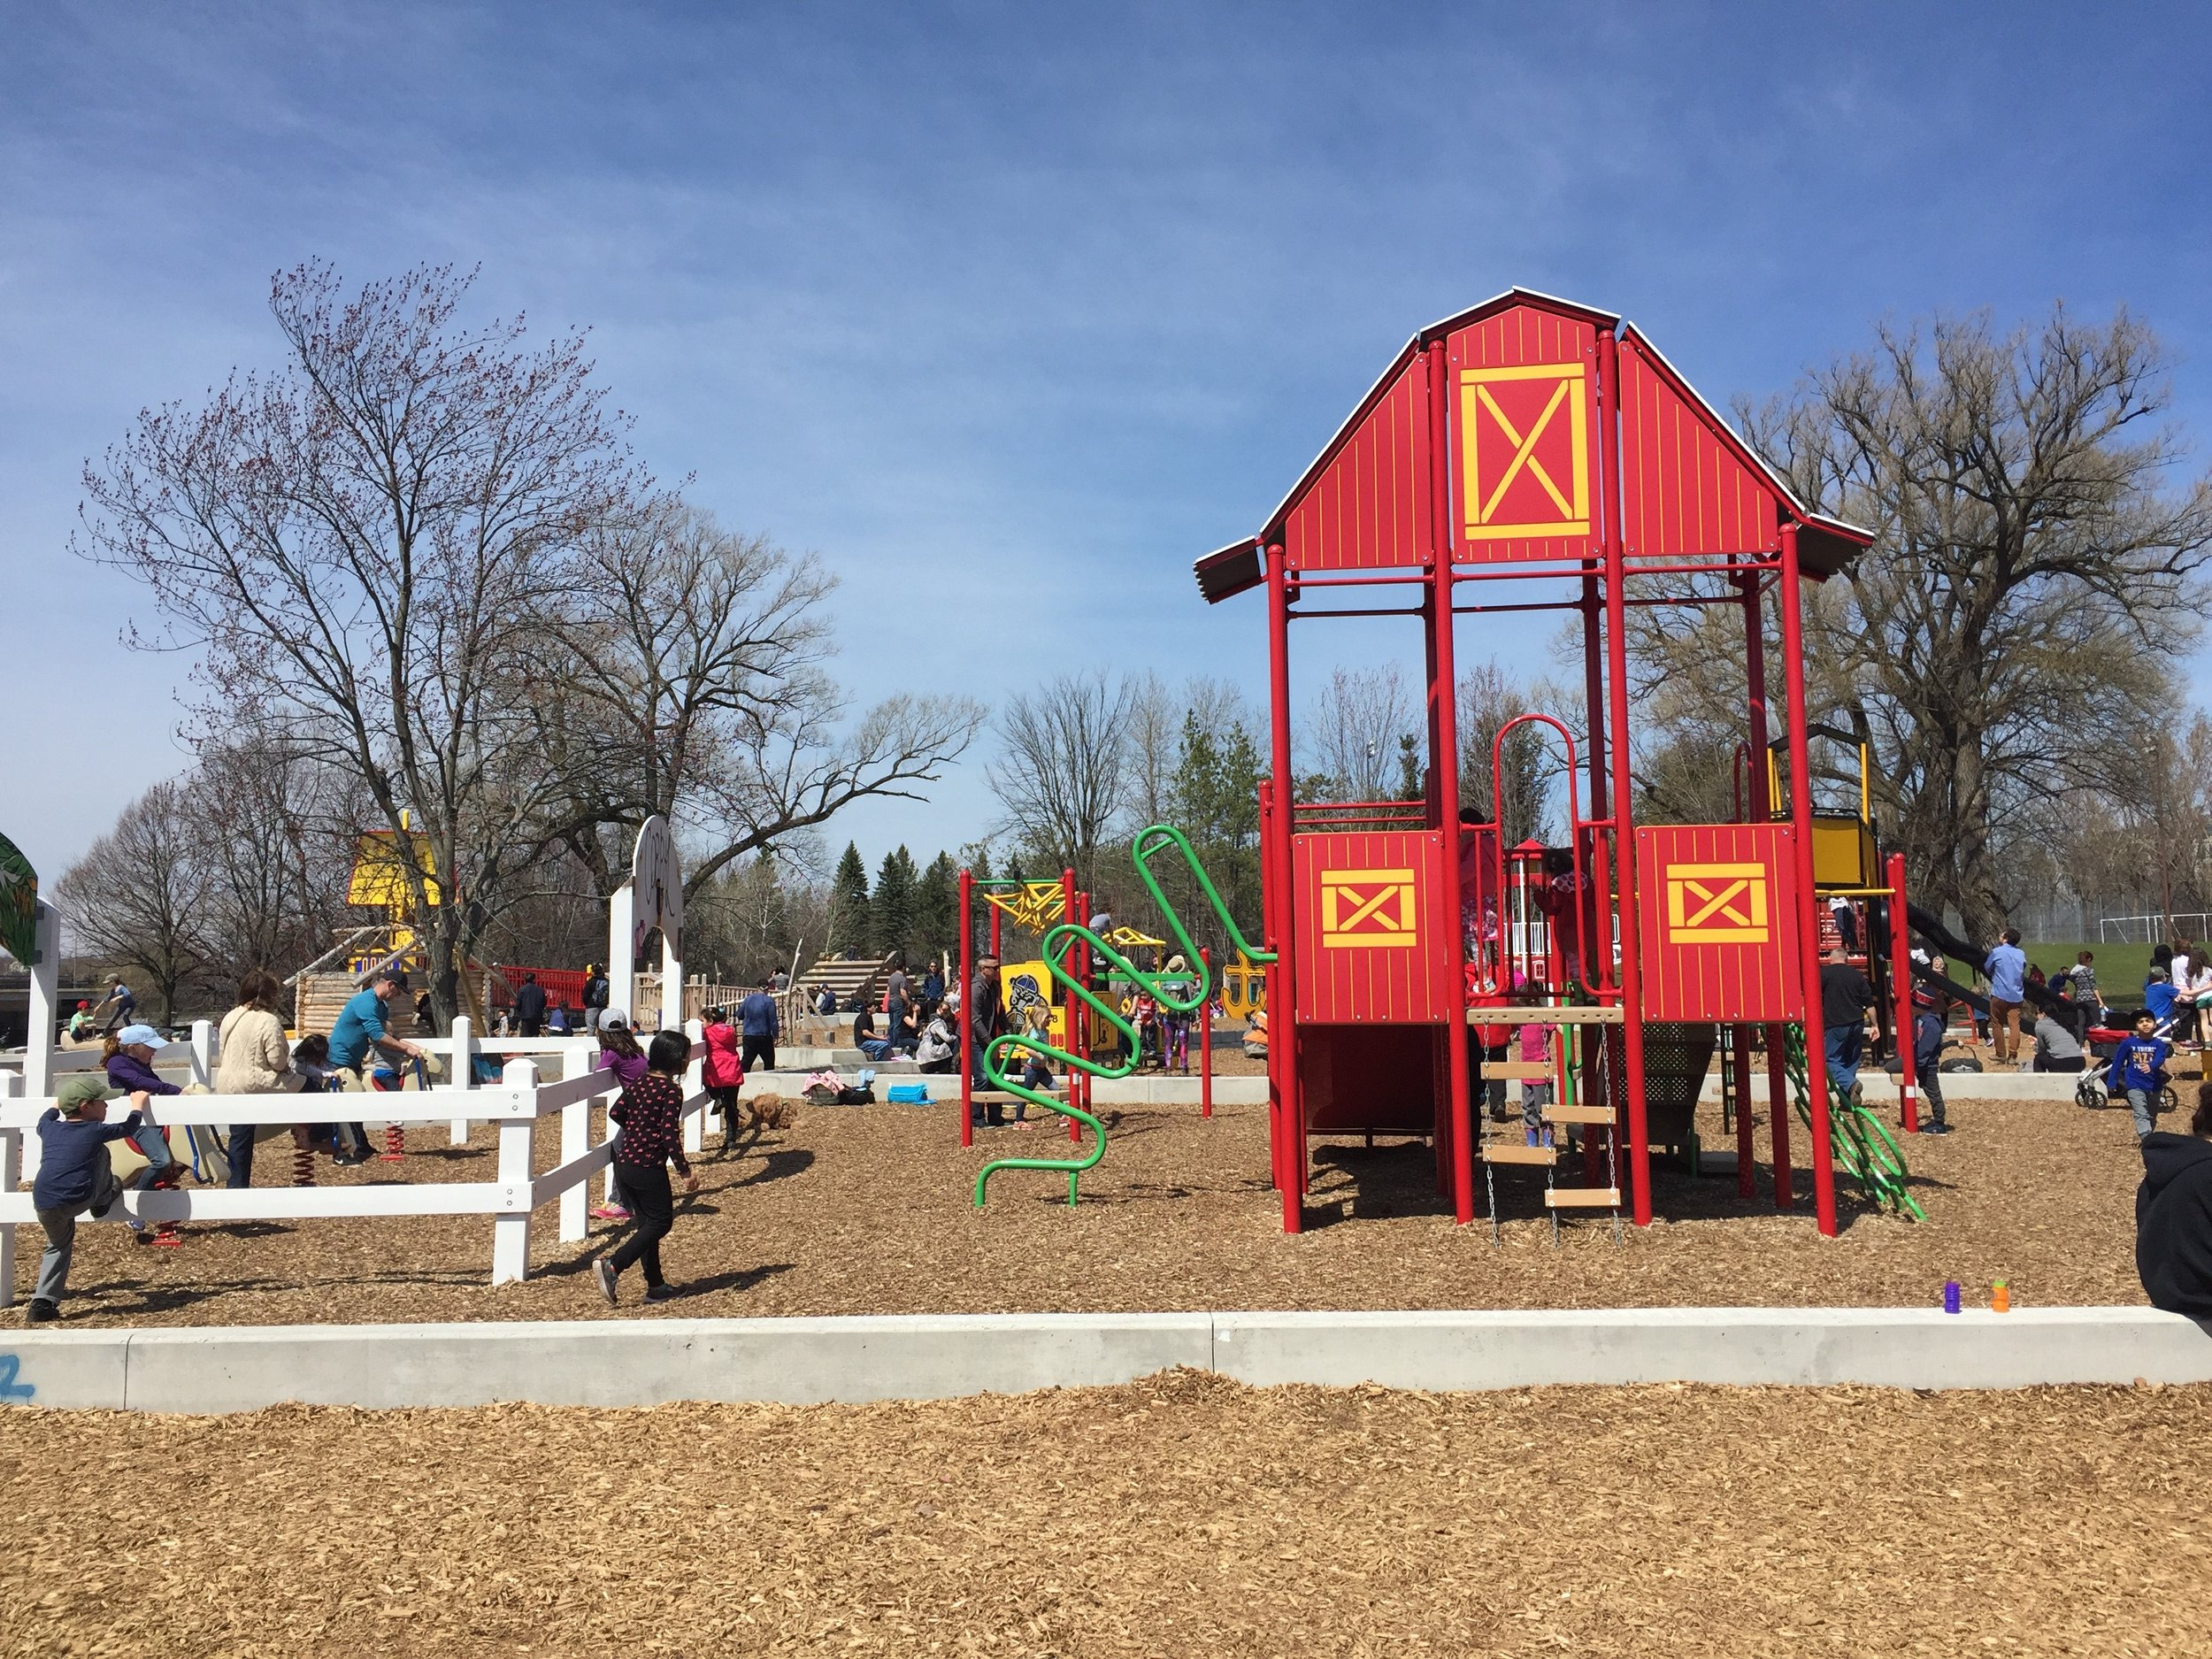 Can you guess what part of Canada this section of the playground is?